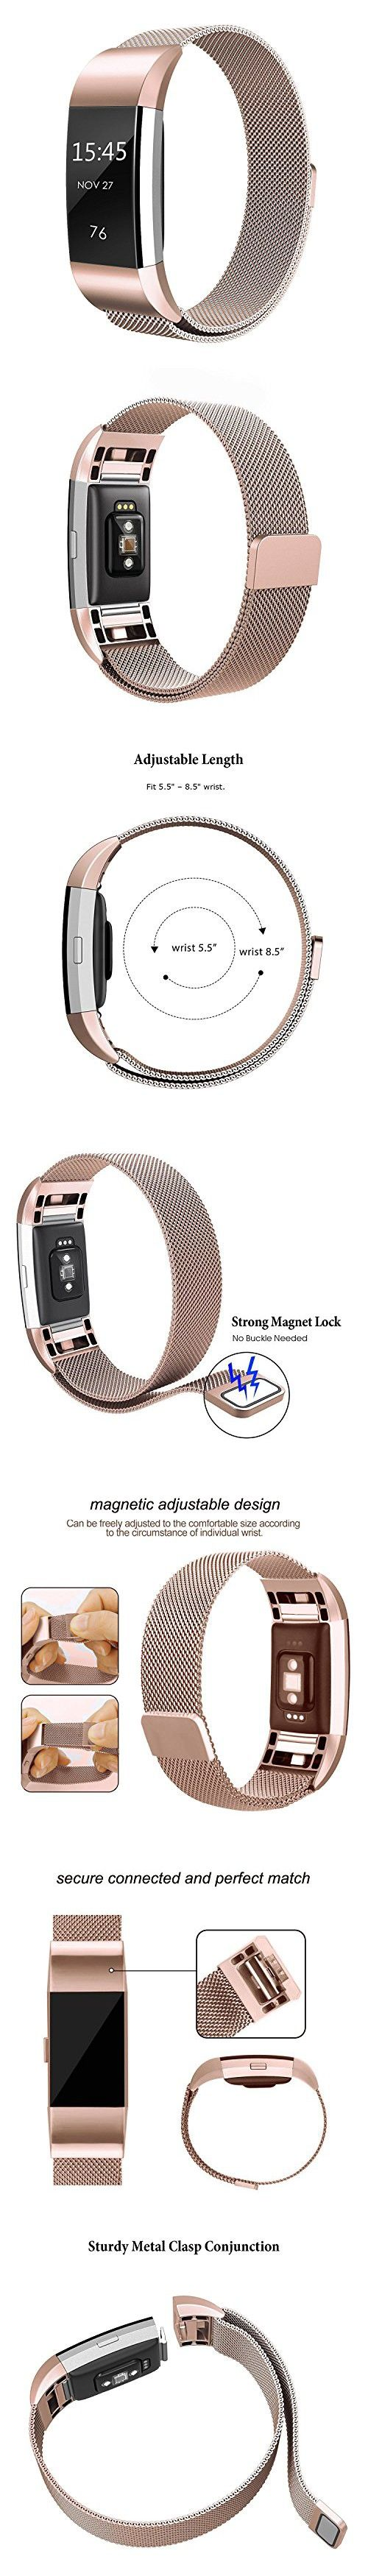 Abeky Milanese Band Fitbit Charge 2 Replacement Bands Charge 2 HR Metal bands Smart Watch AccessoriesBraceletStrapLoop Wristband Stainless Steel with Magnetic Clasp Small Size Apple Rose Gold